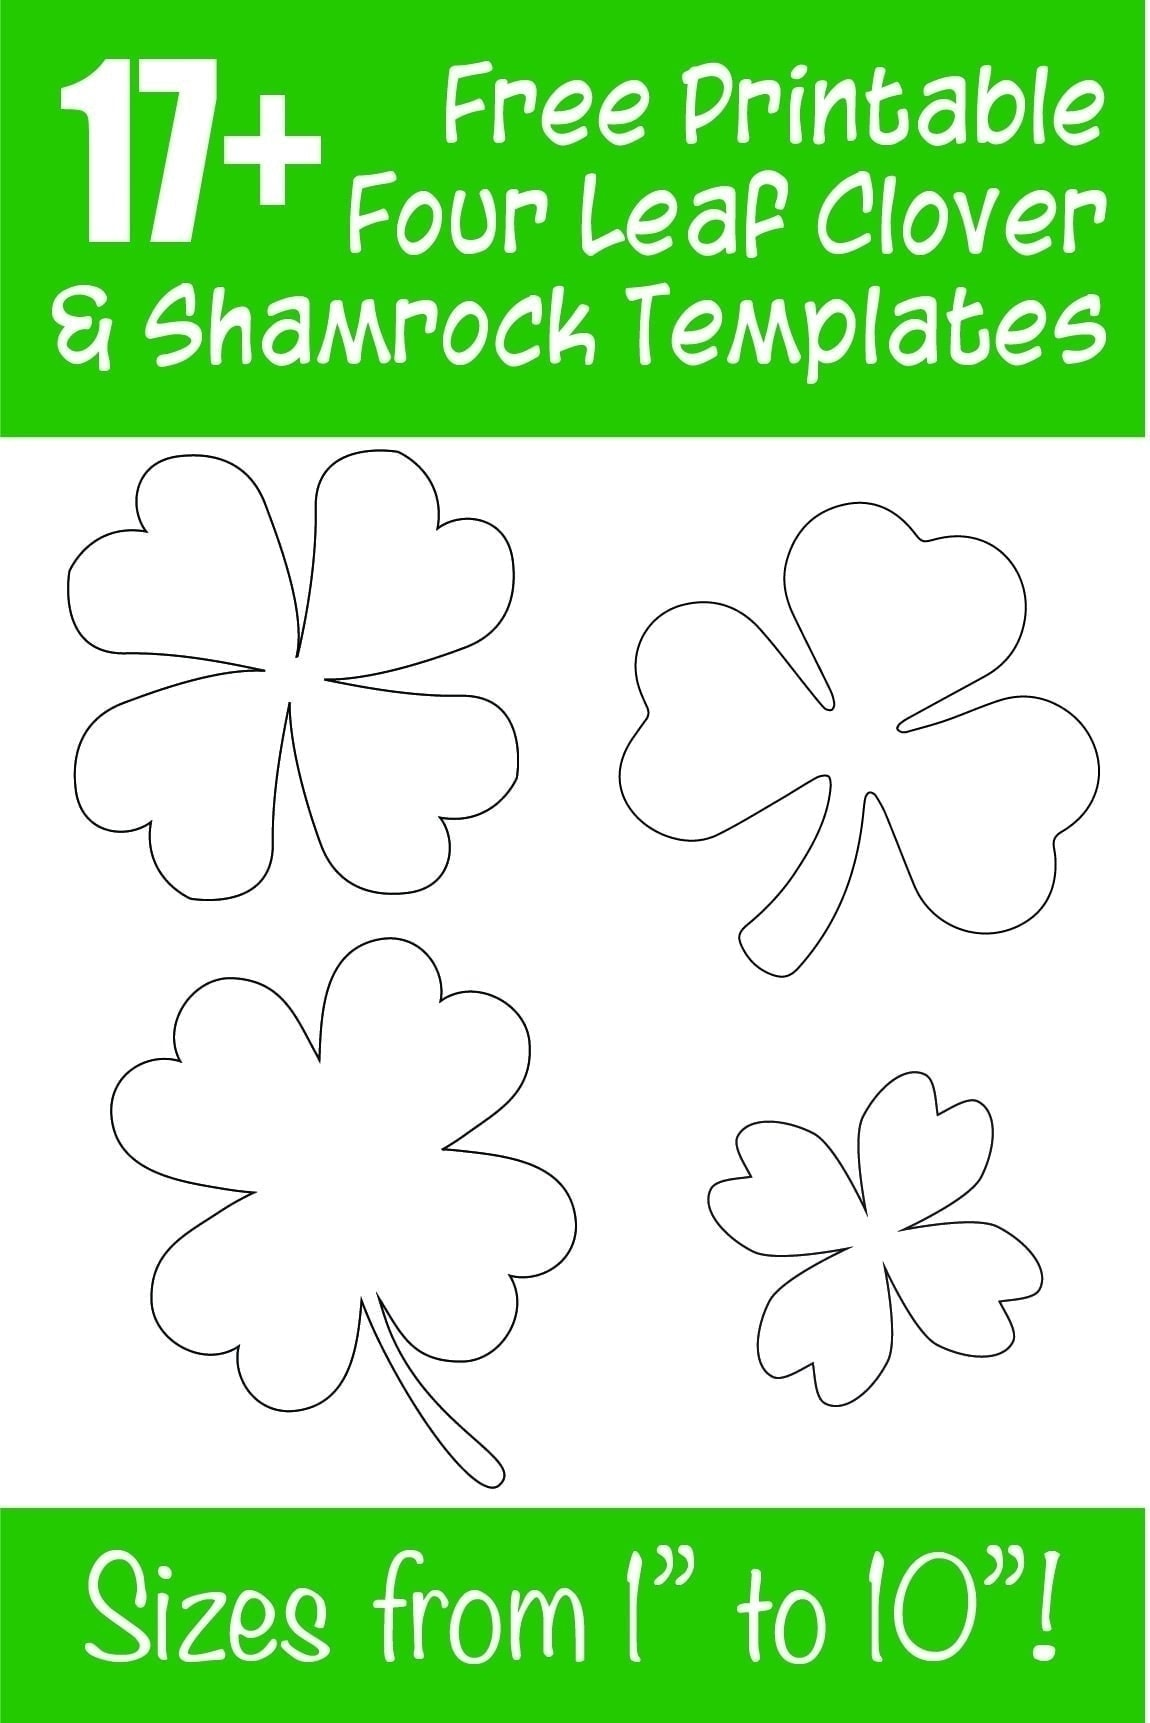 photo relating to Printable Shamrock Images titled 17+ Cost-free Printable 4 Leaf Clover Shamrock Templates